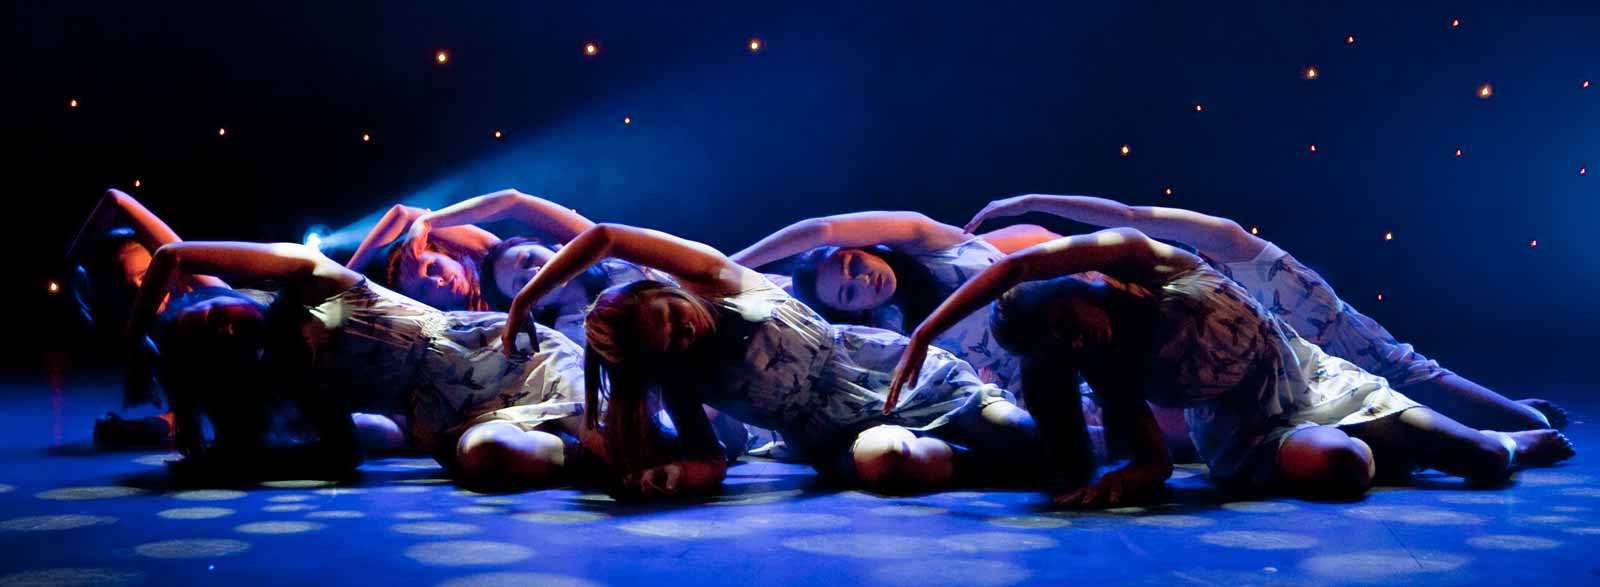 A Teens' Contemporary performance at the Aviv Dance Studios Annual Show